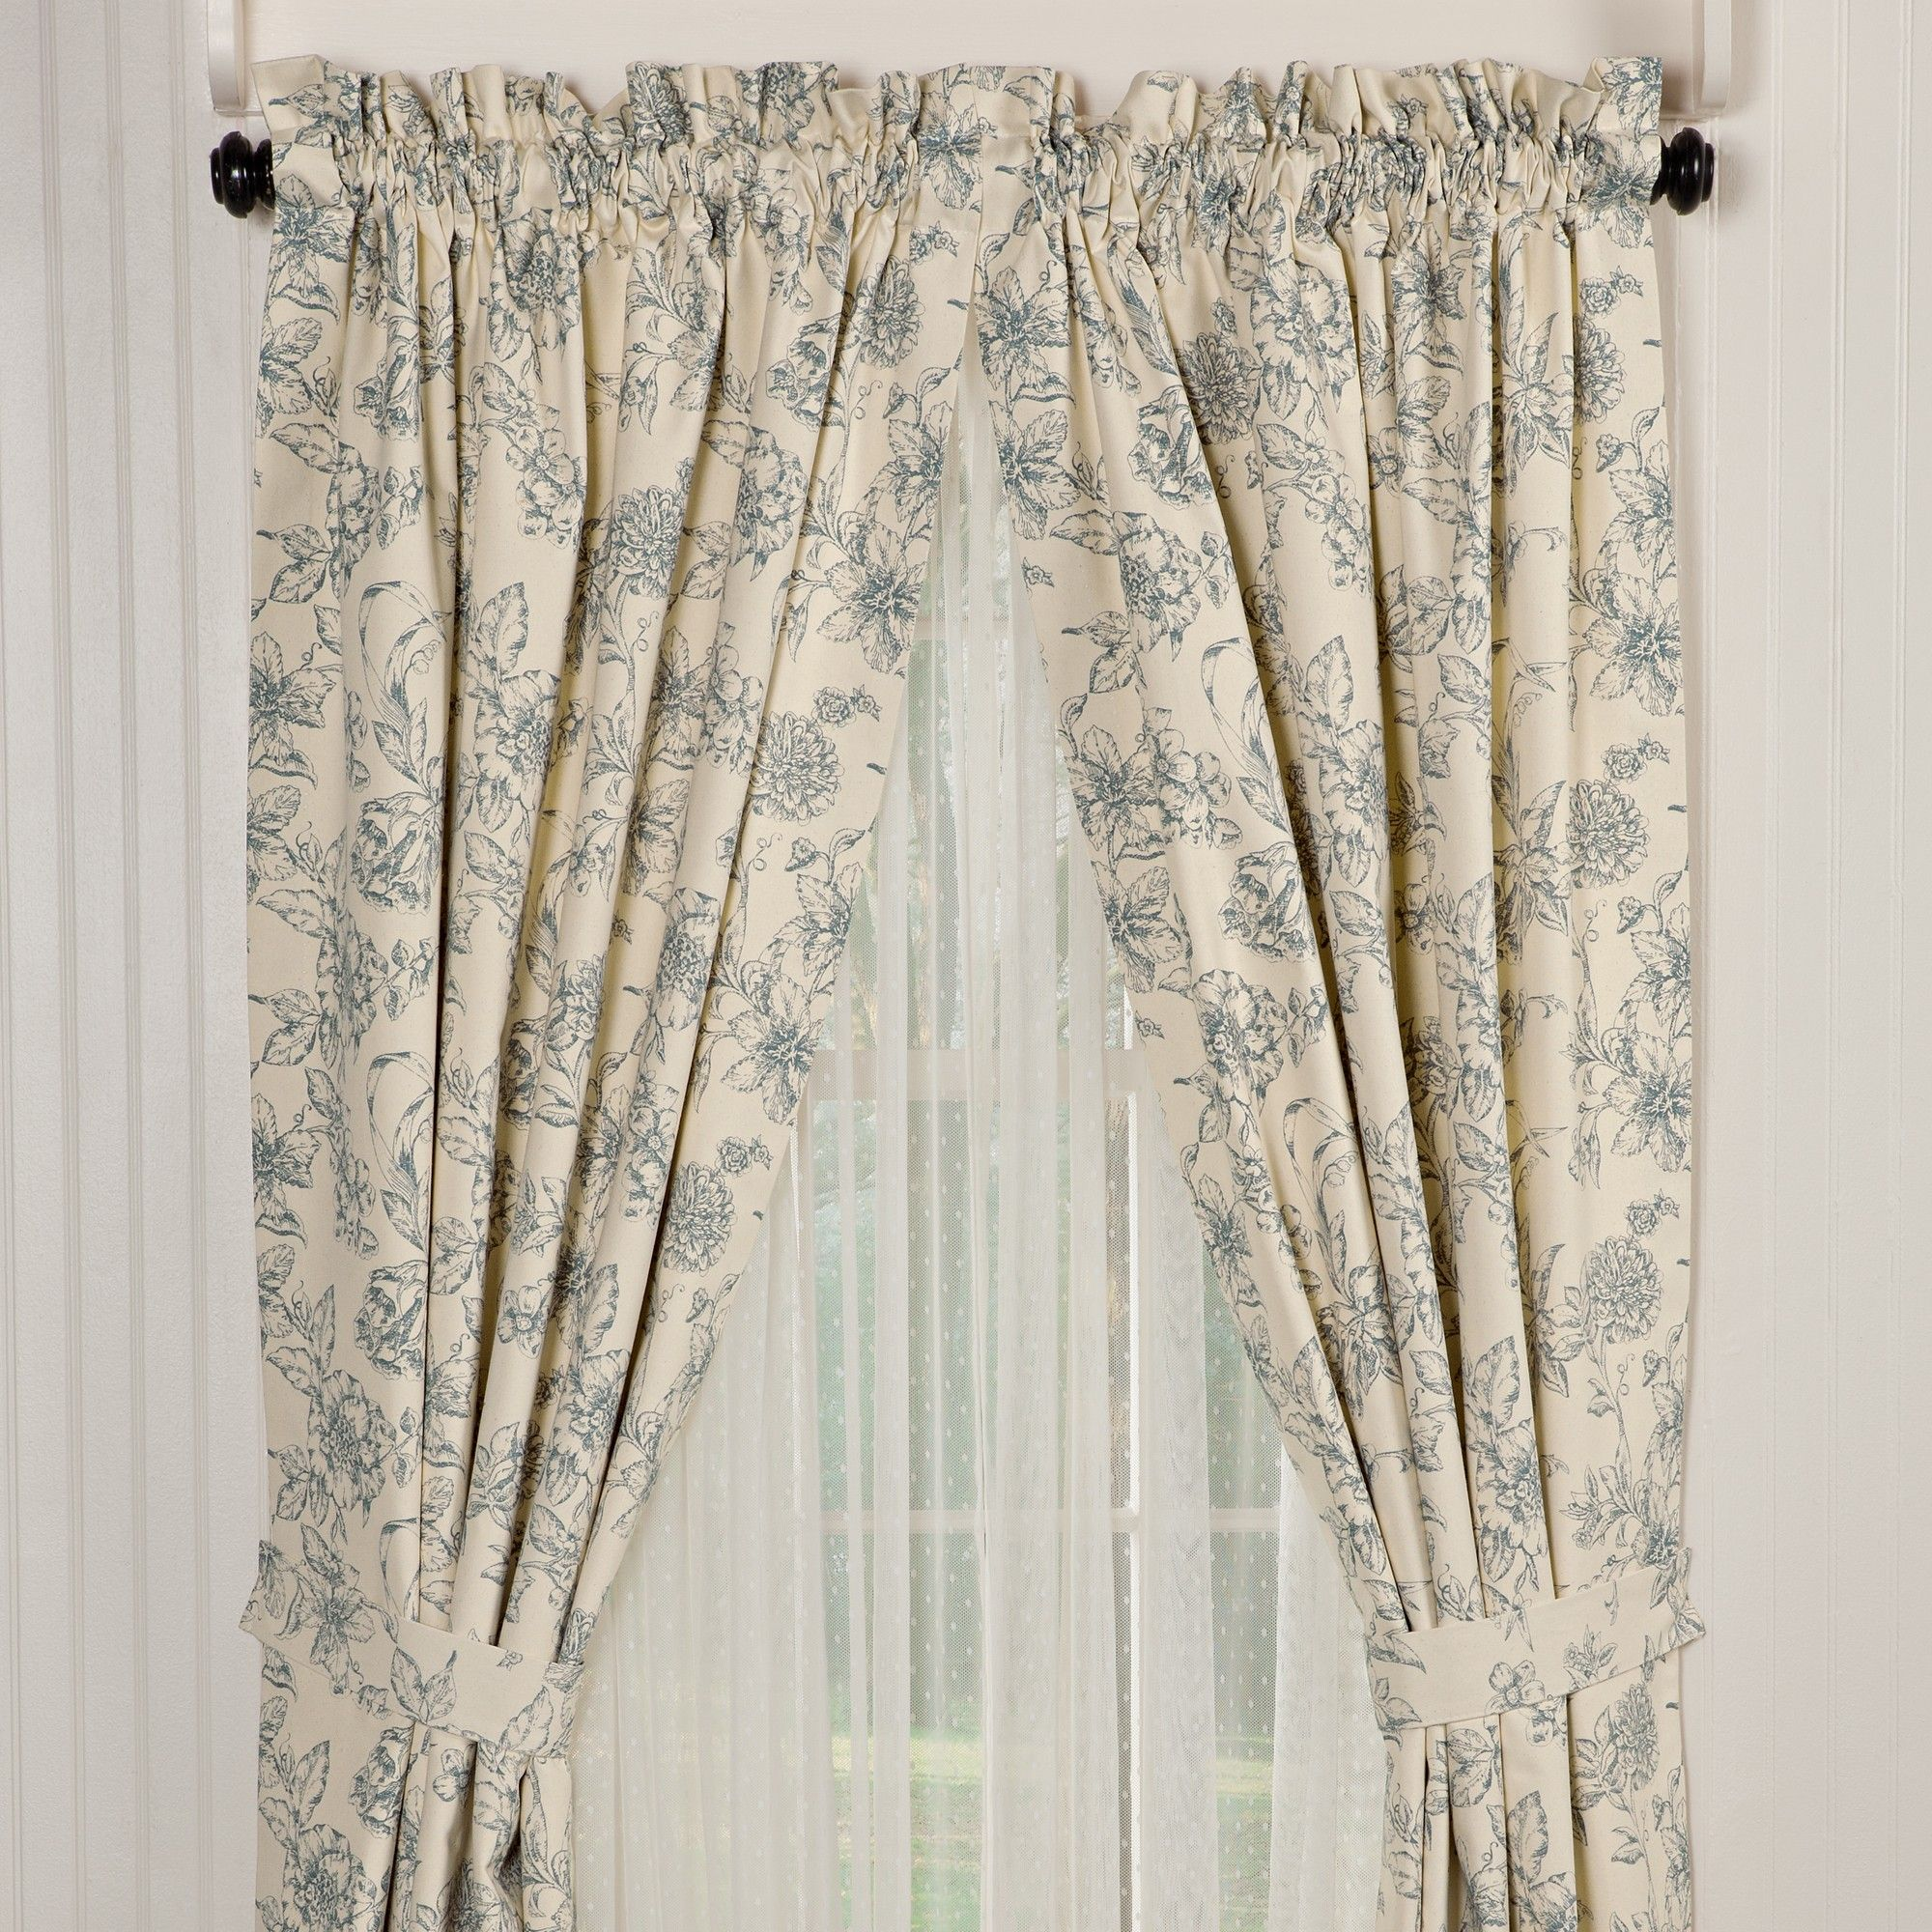 Chic Floral Pattern Drapes And Contemporary Iron Curtain Rod Also White  Wall Idea Excellent Door And